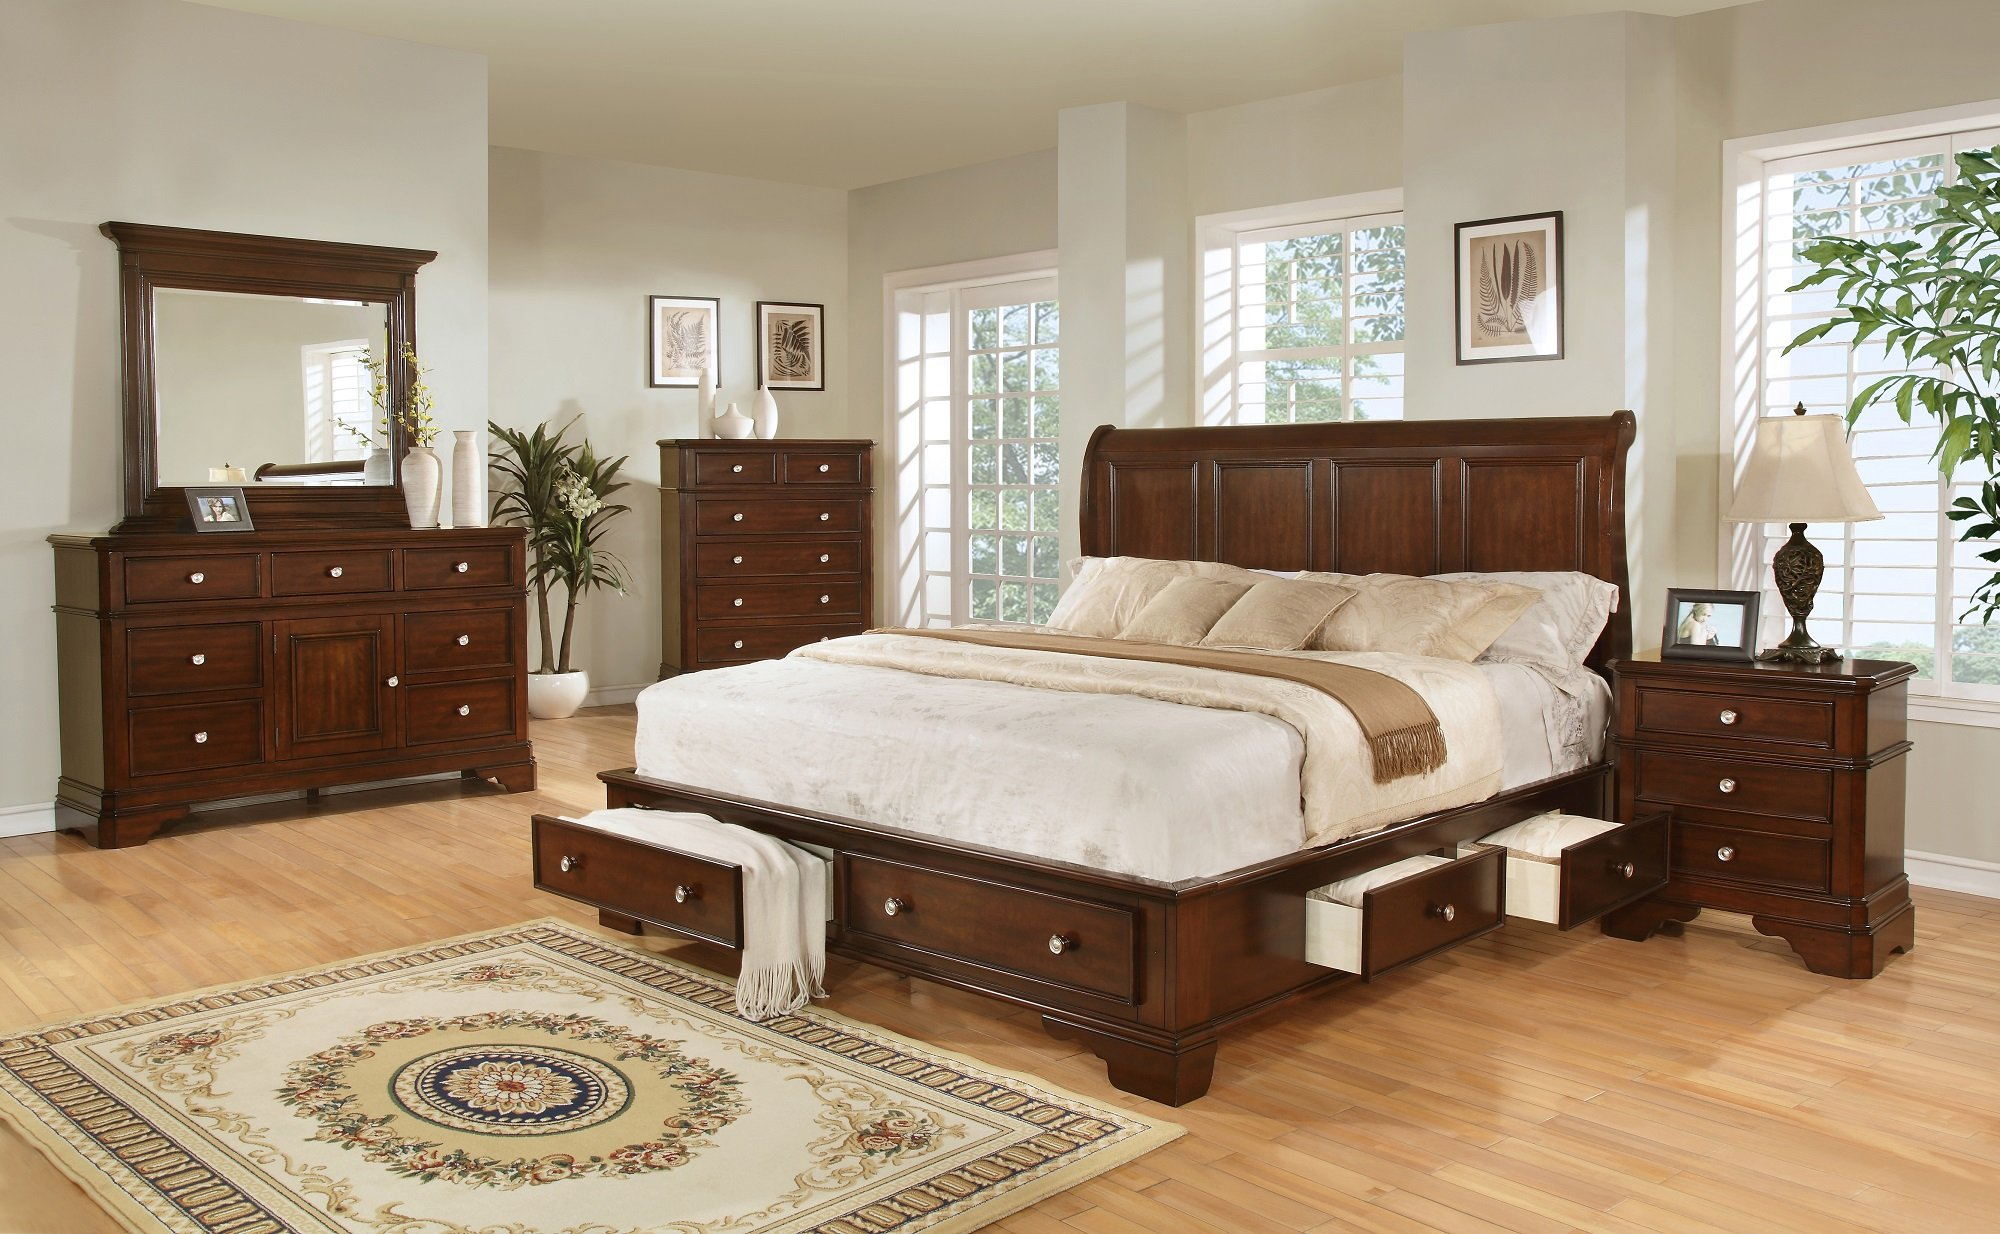 Bedroom Sets With Storage. B3185BR Furniture Clearance Center  Storage Suites